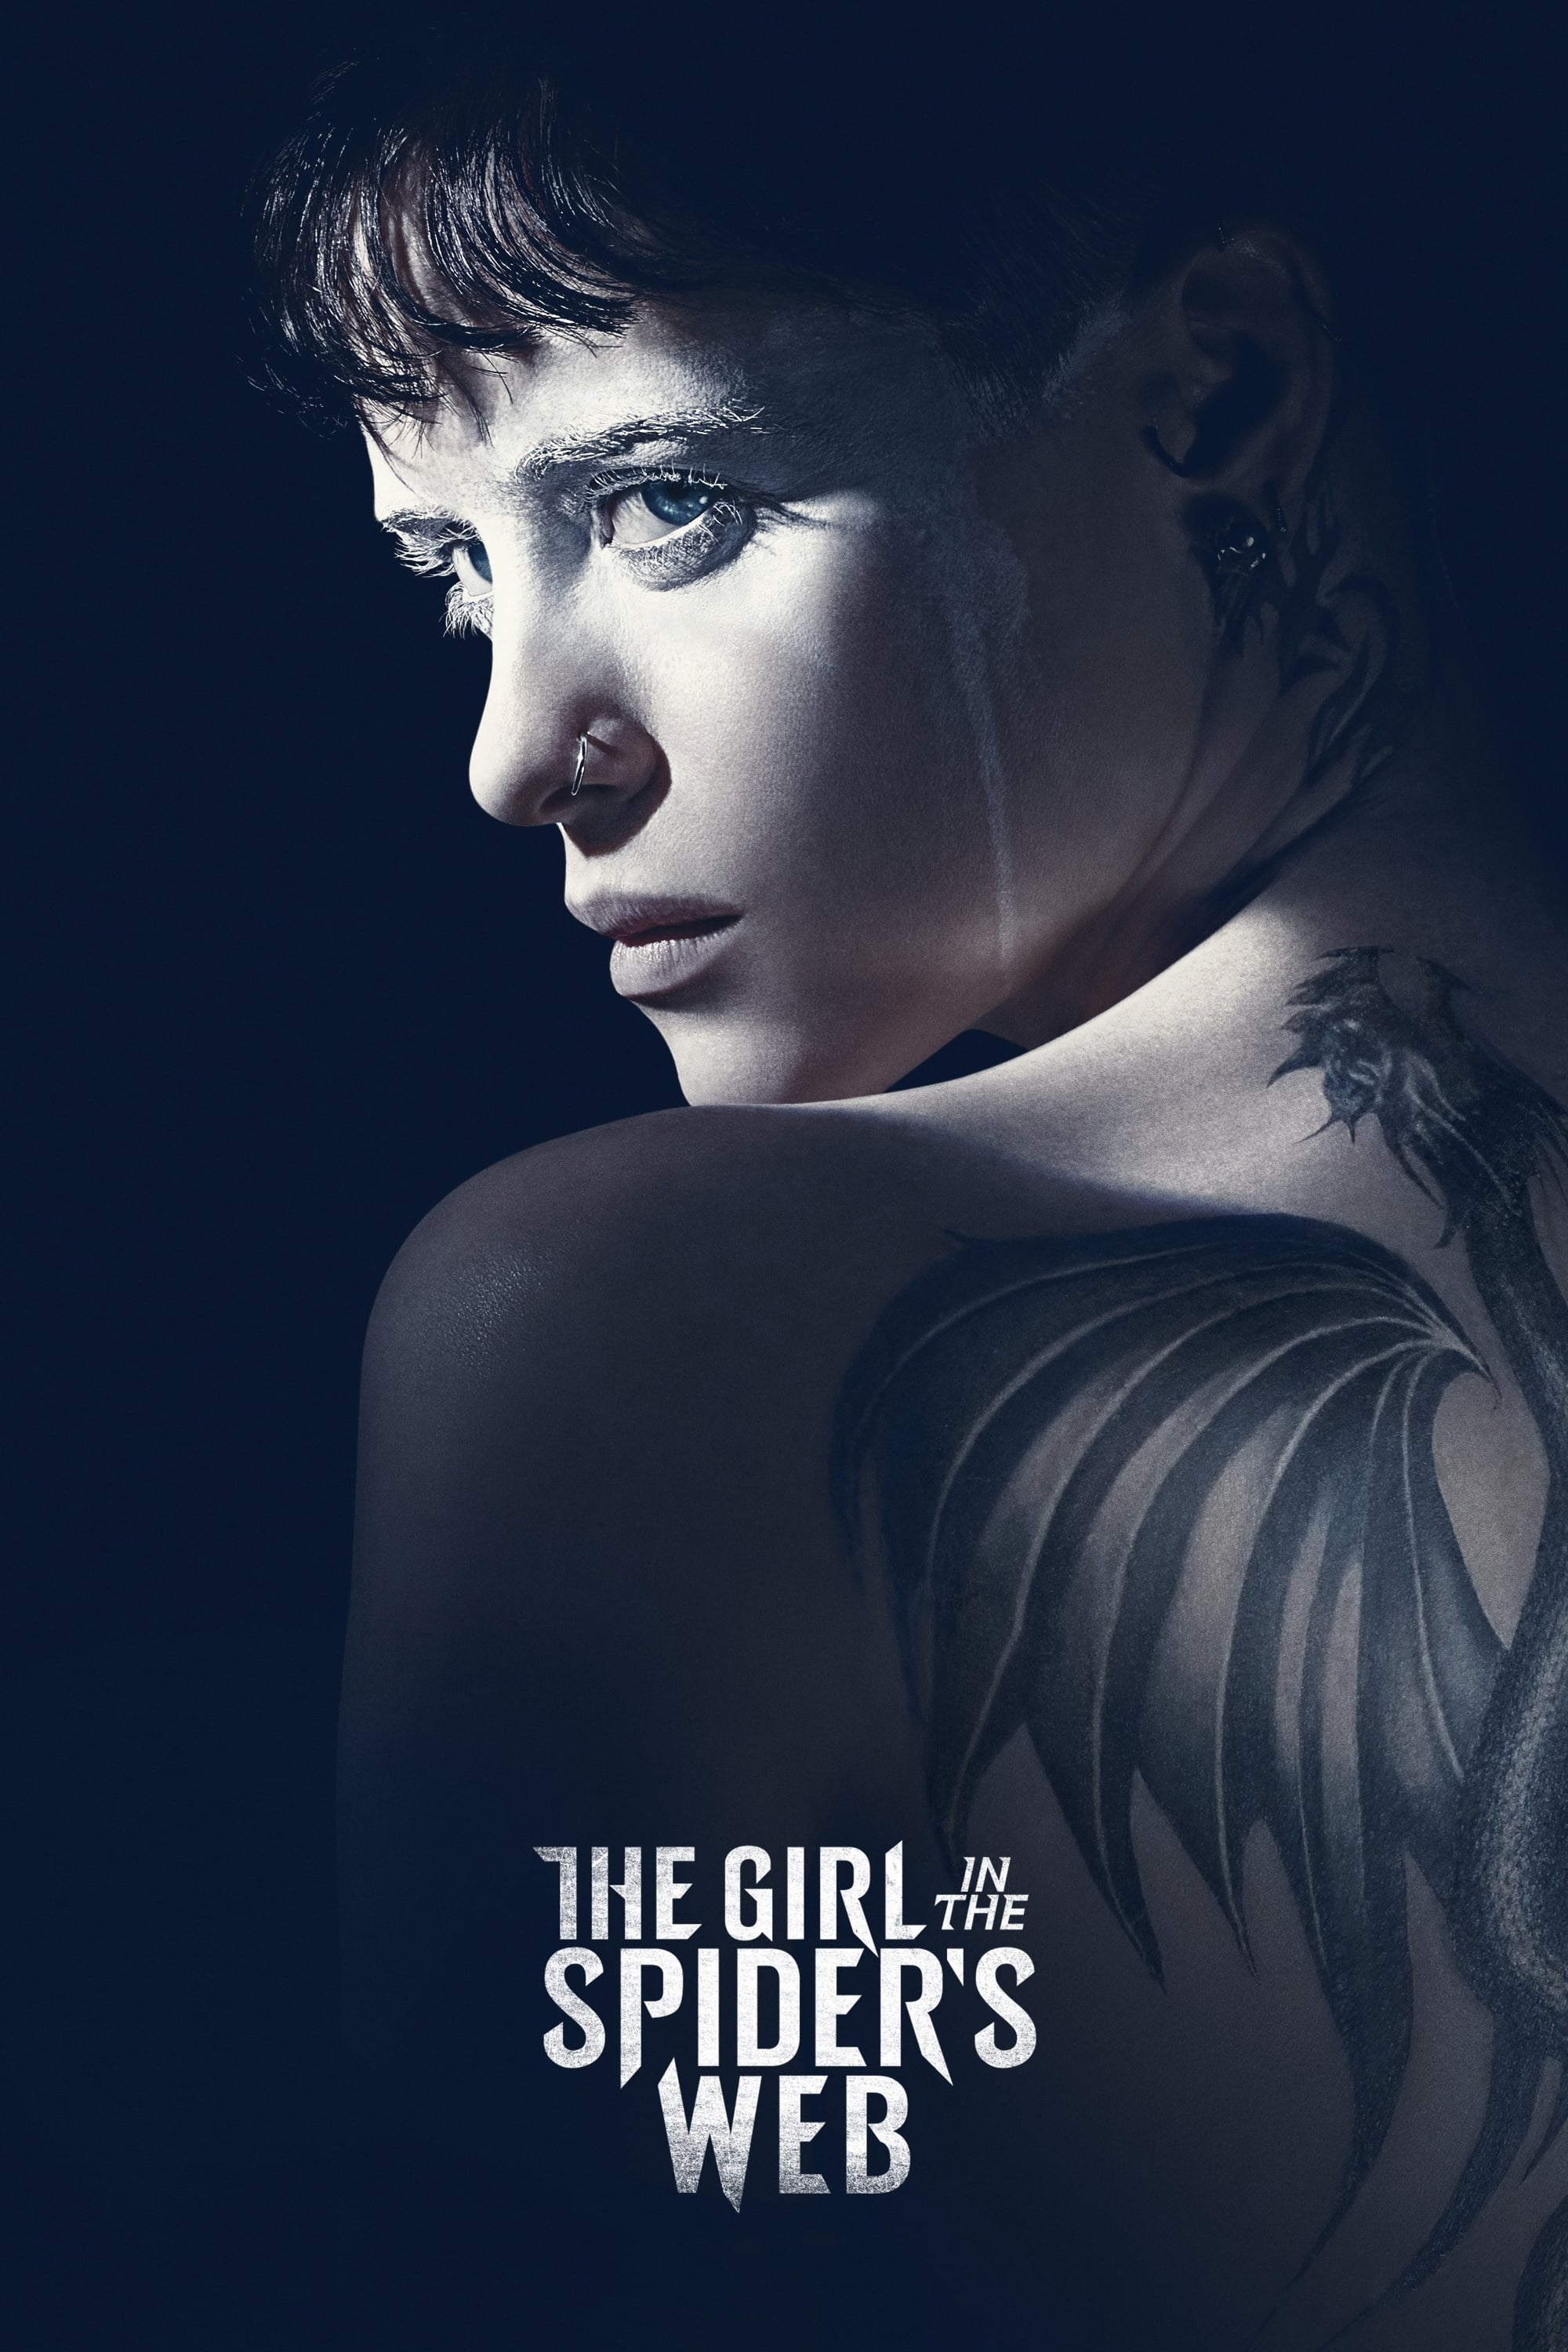 image for The Girl in the Spider